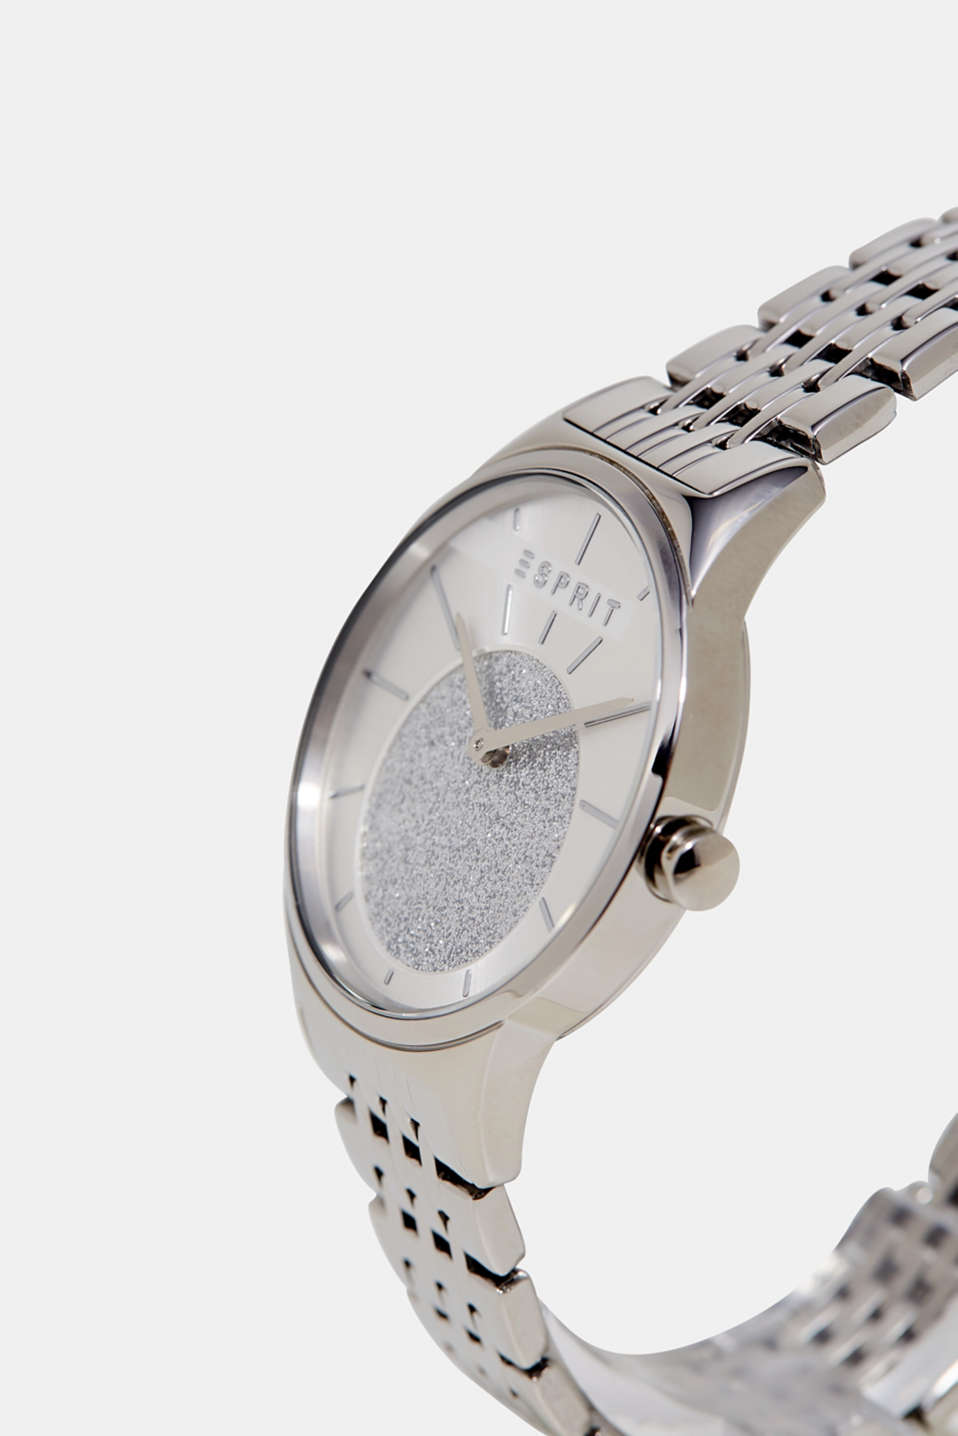 Watch with glittering dial